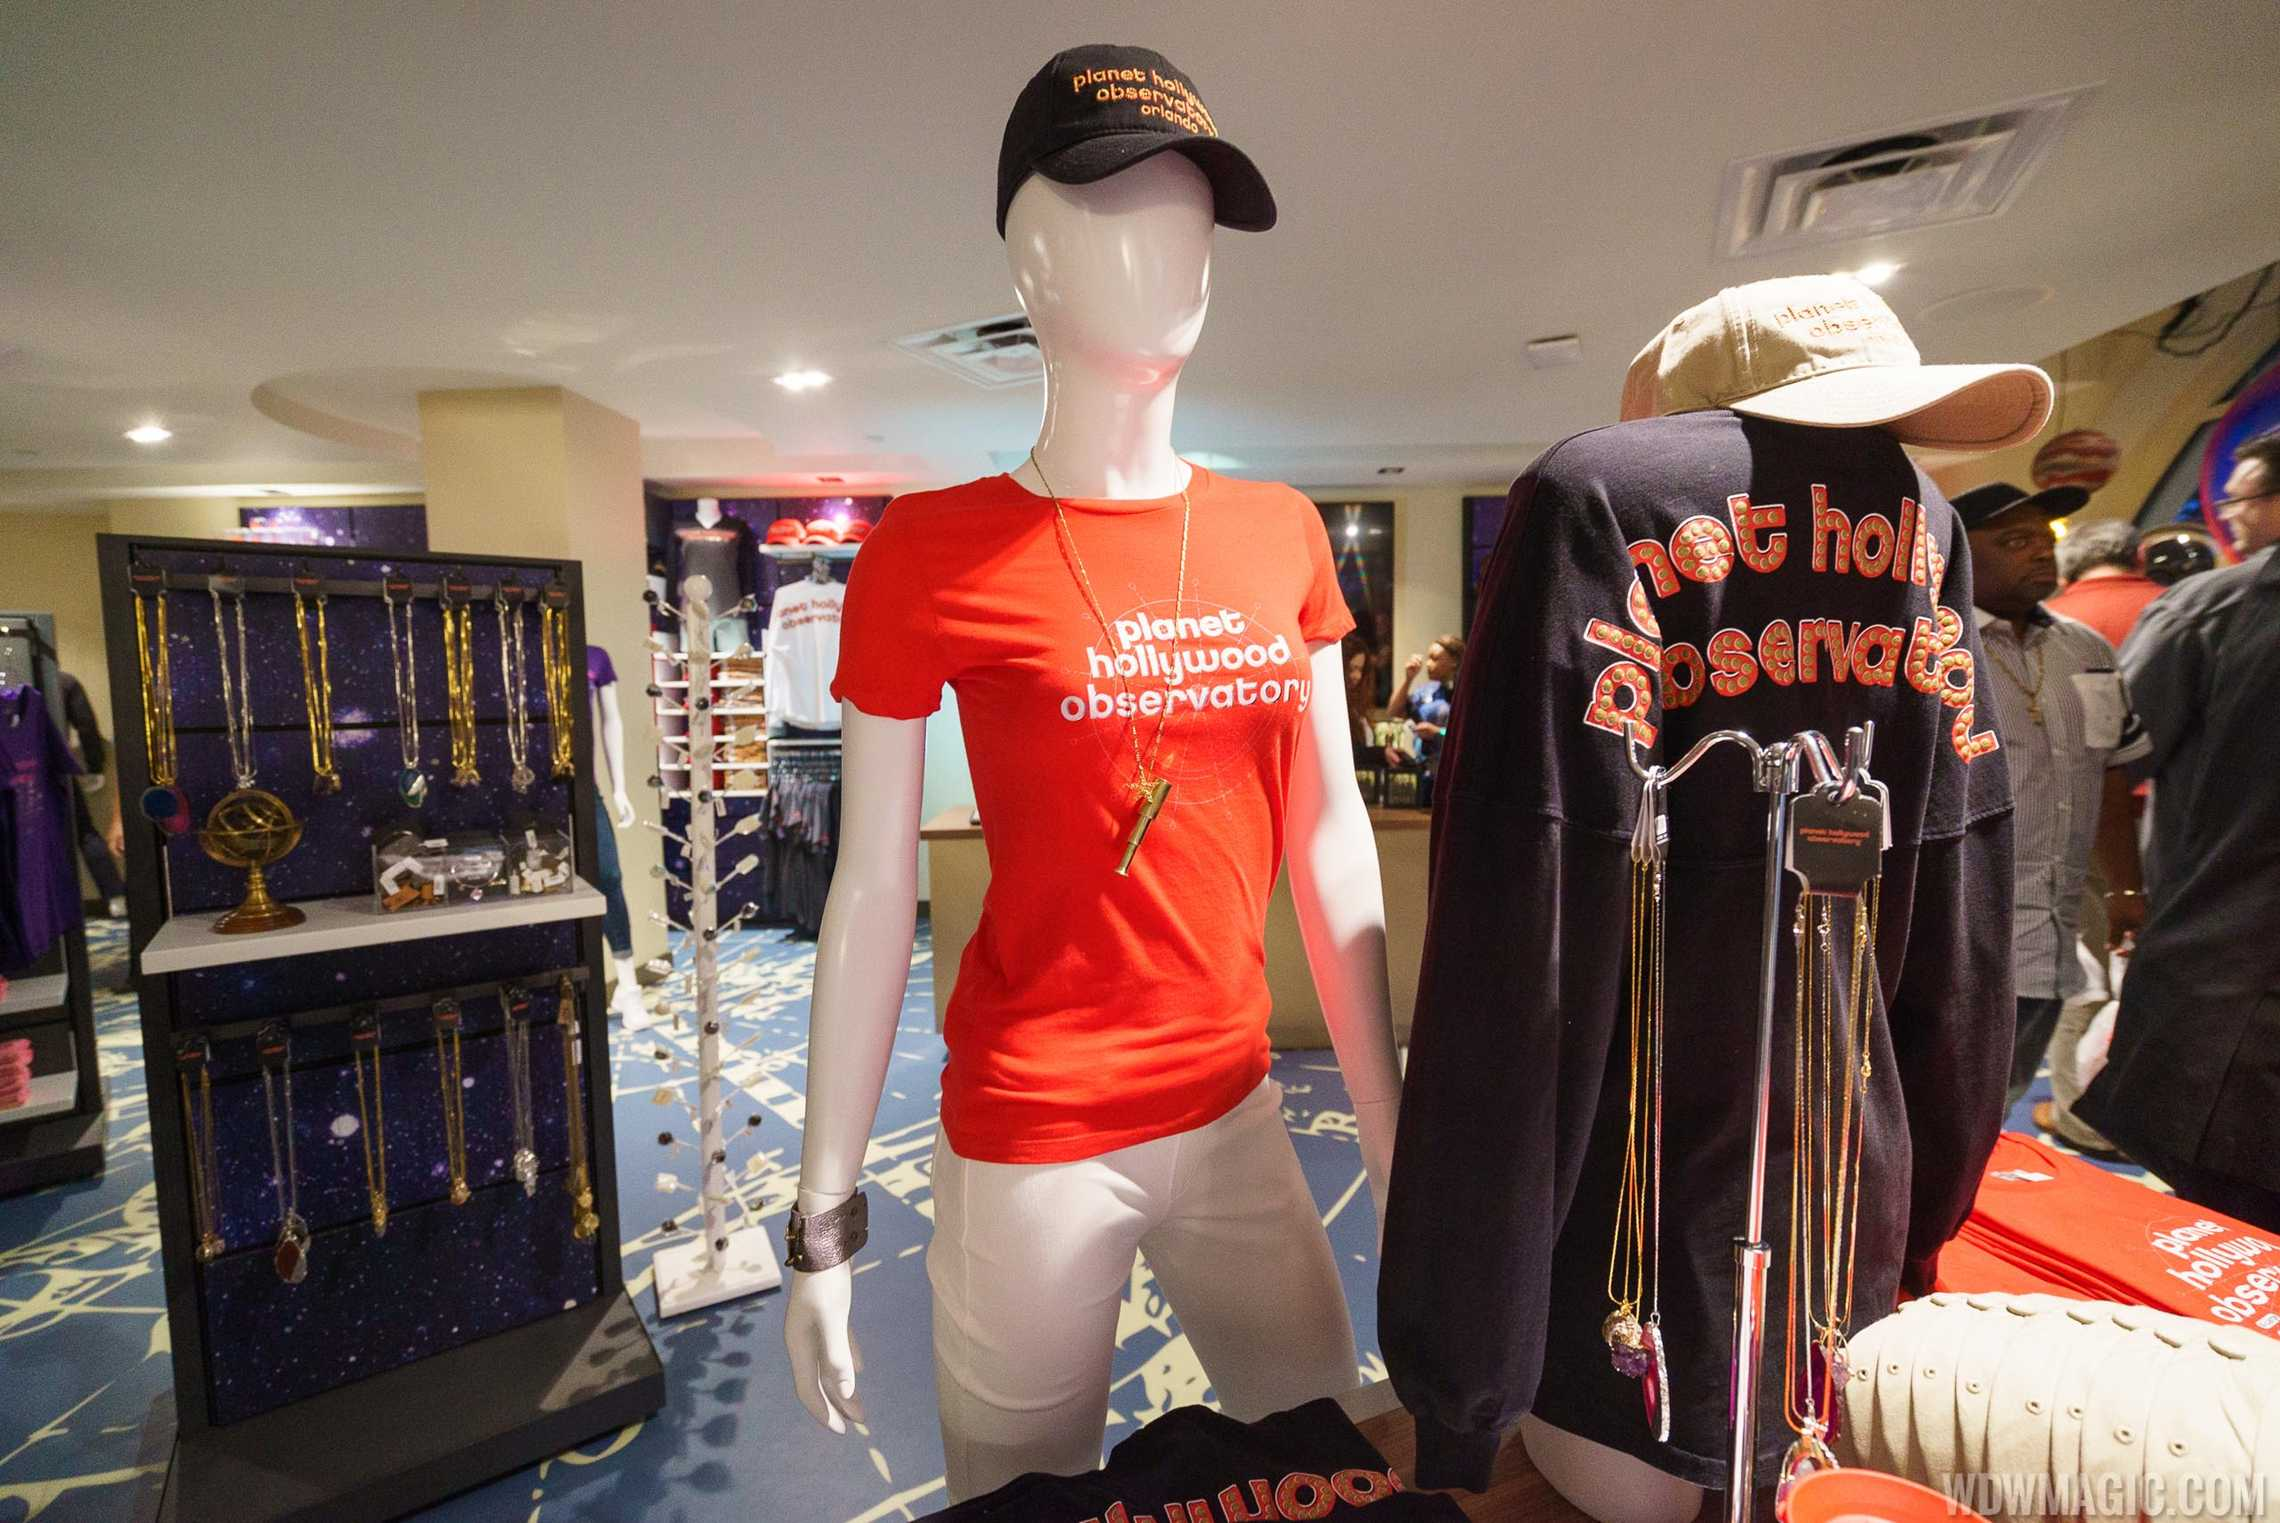 Planet Hollywood Observatory - Merchandise in the gift store